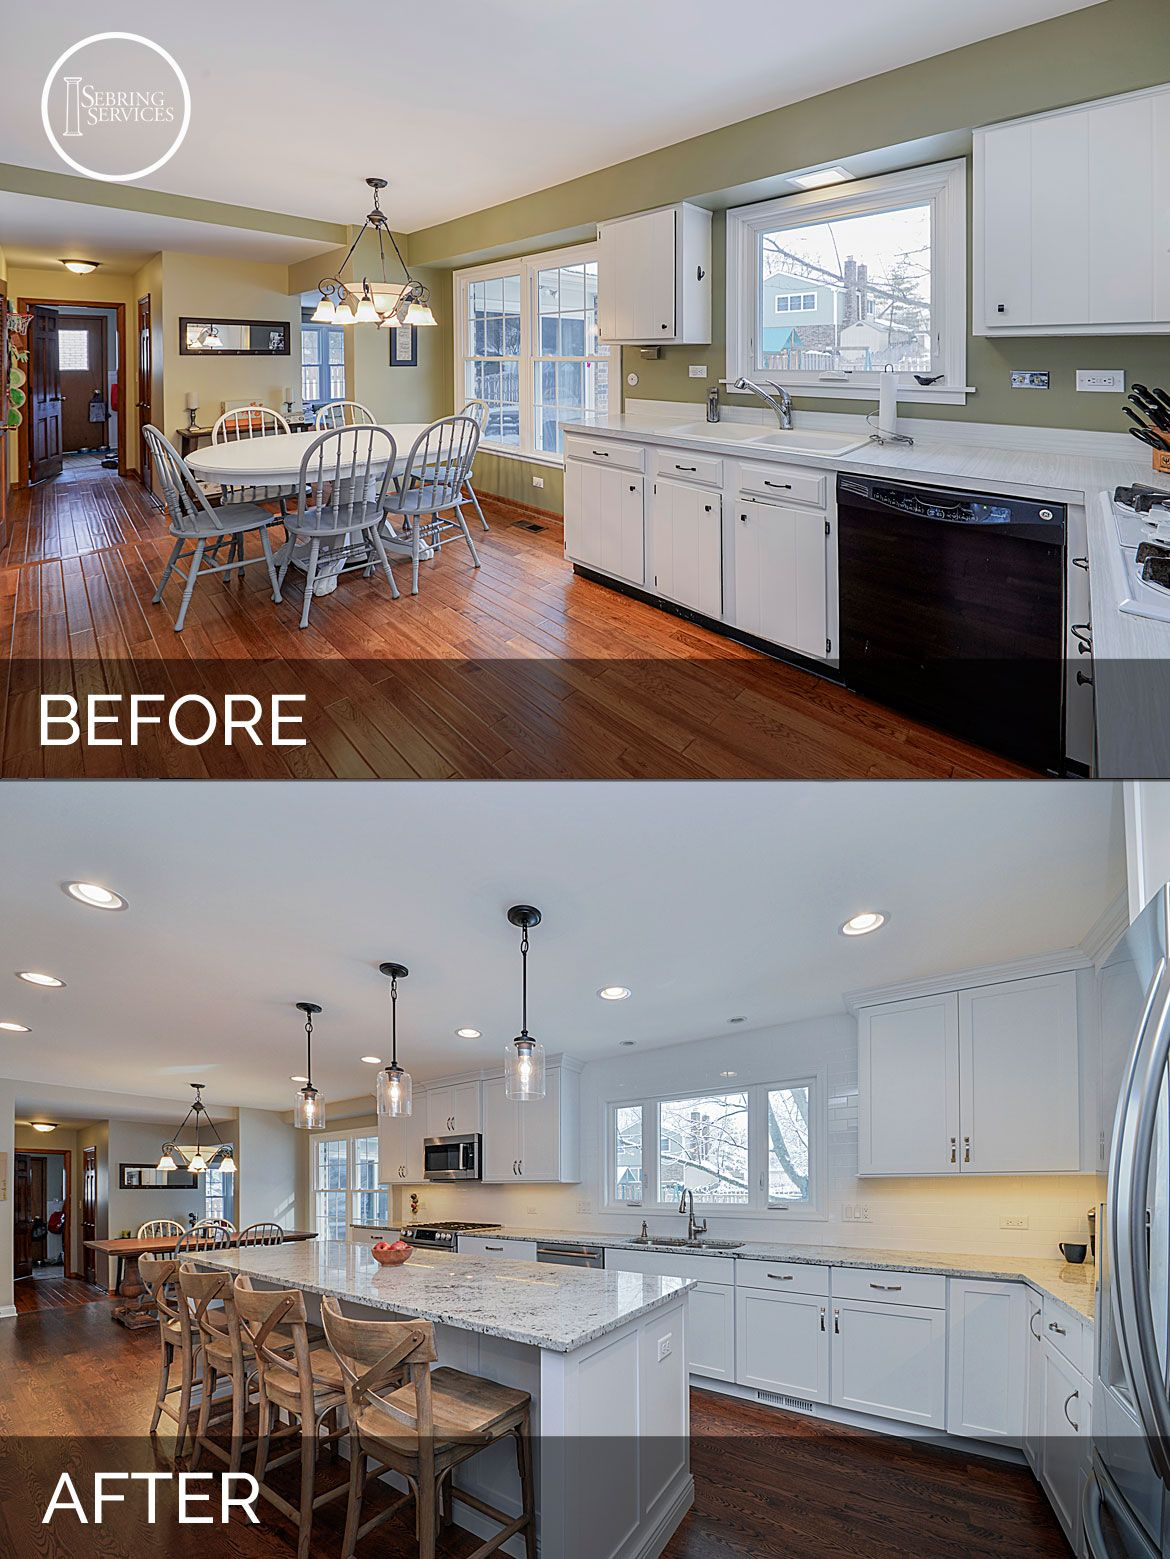 Remodeling Kitchen Ideas Before And After Ryan & Missy's Kitchen Before & After Pictures  Kitchens Kitchen